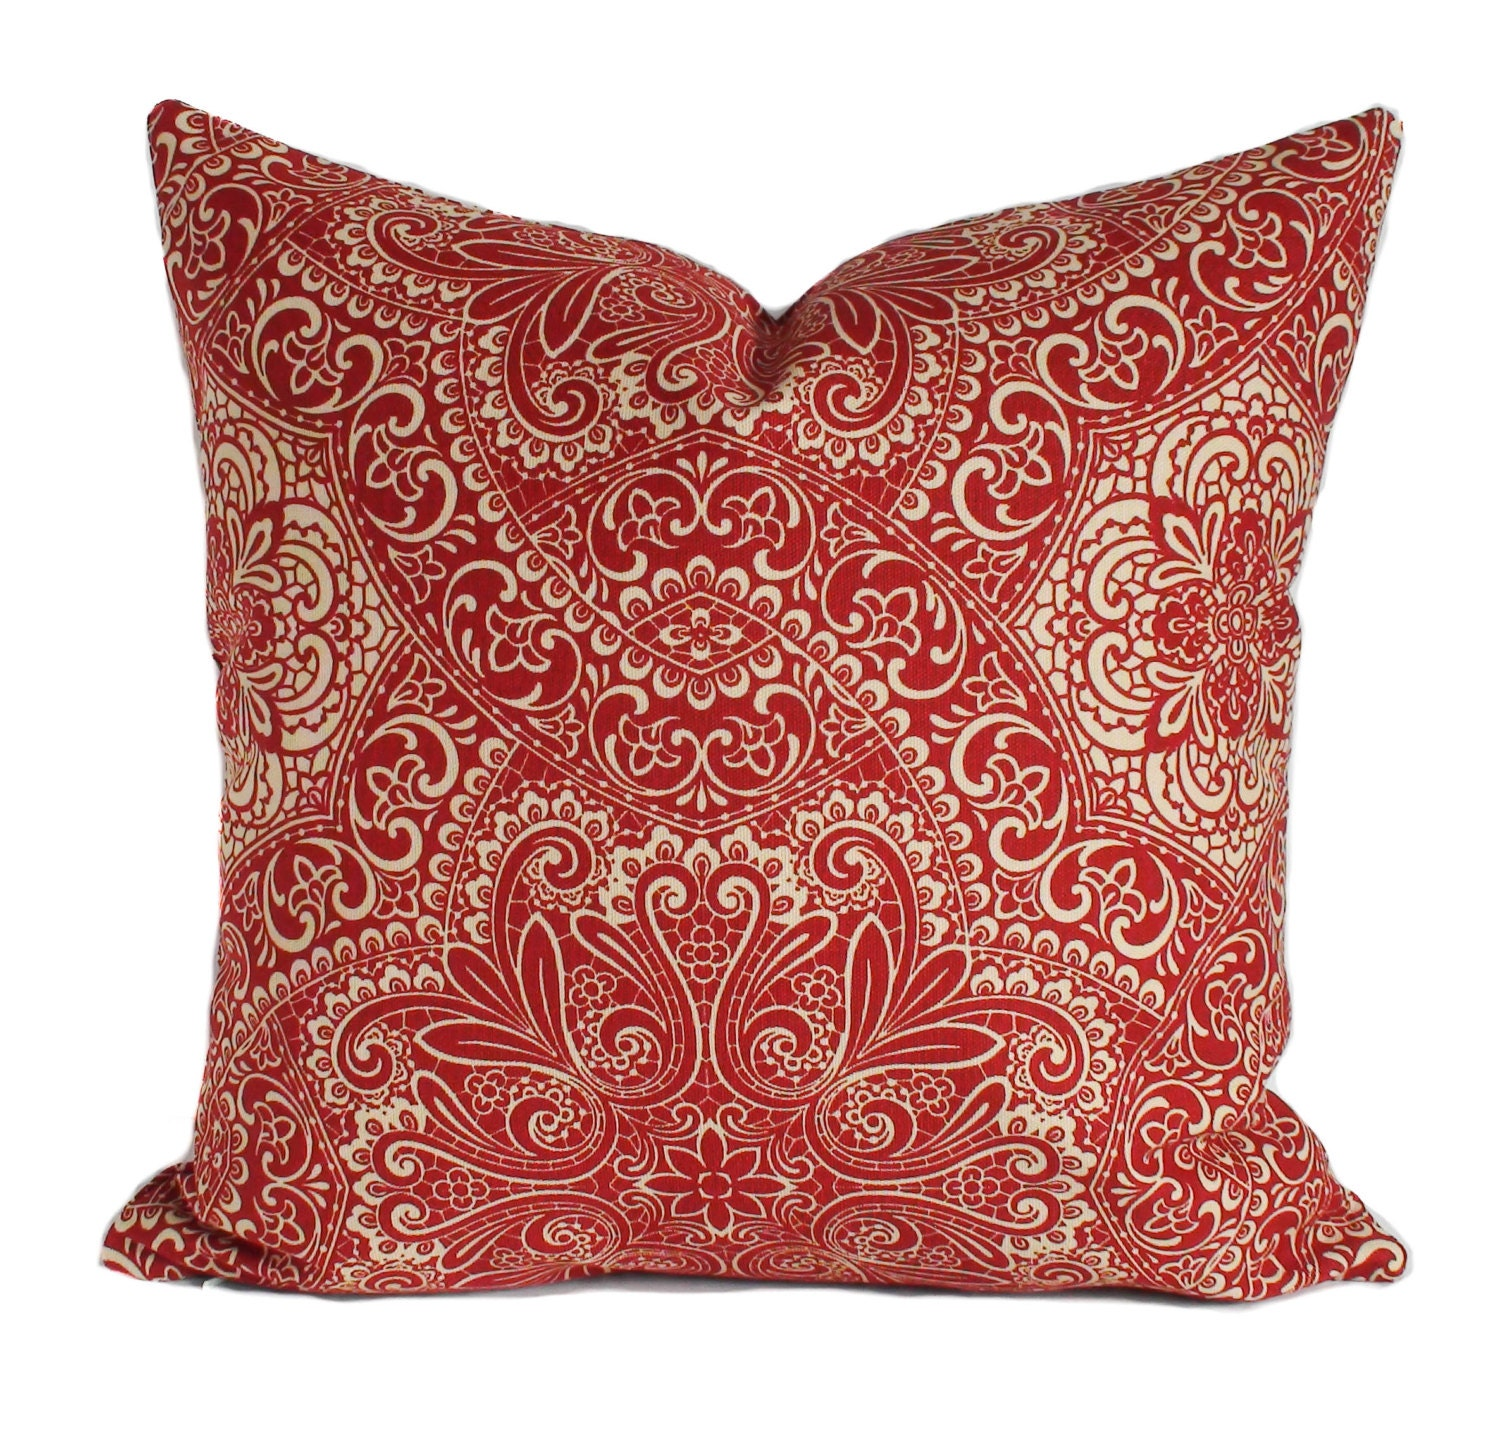 Decorative Pillows For Red Sofa : Red pillow cover Decorative pillow Red throw pillow